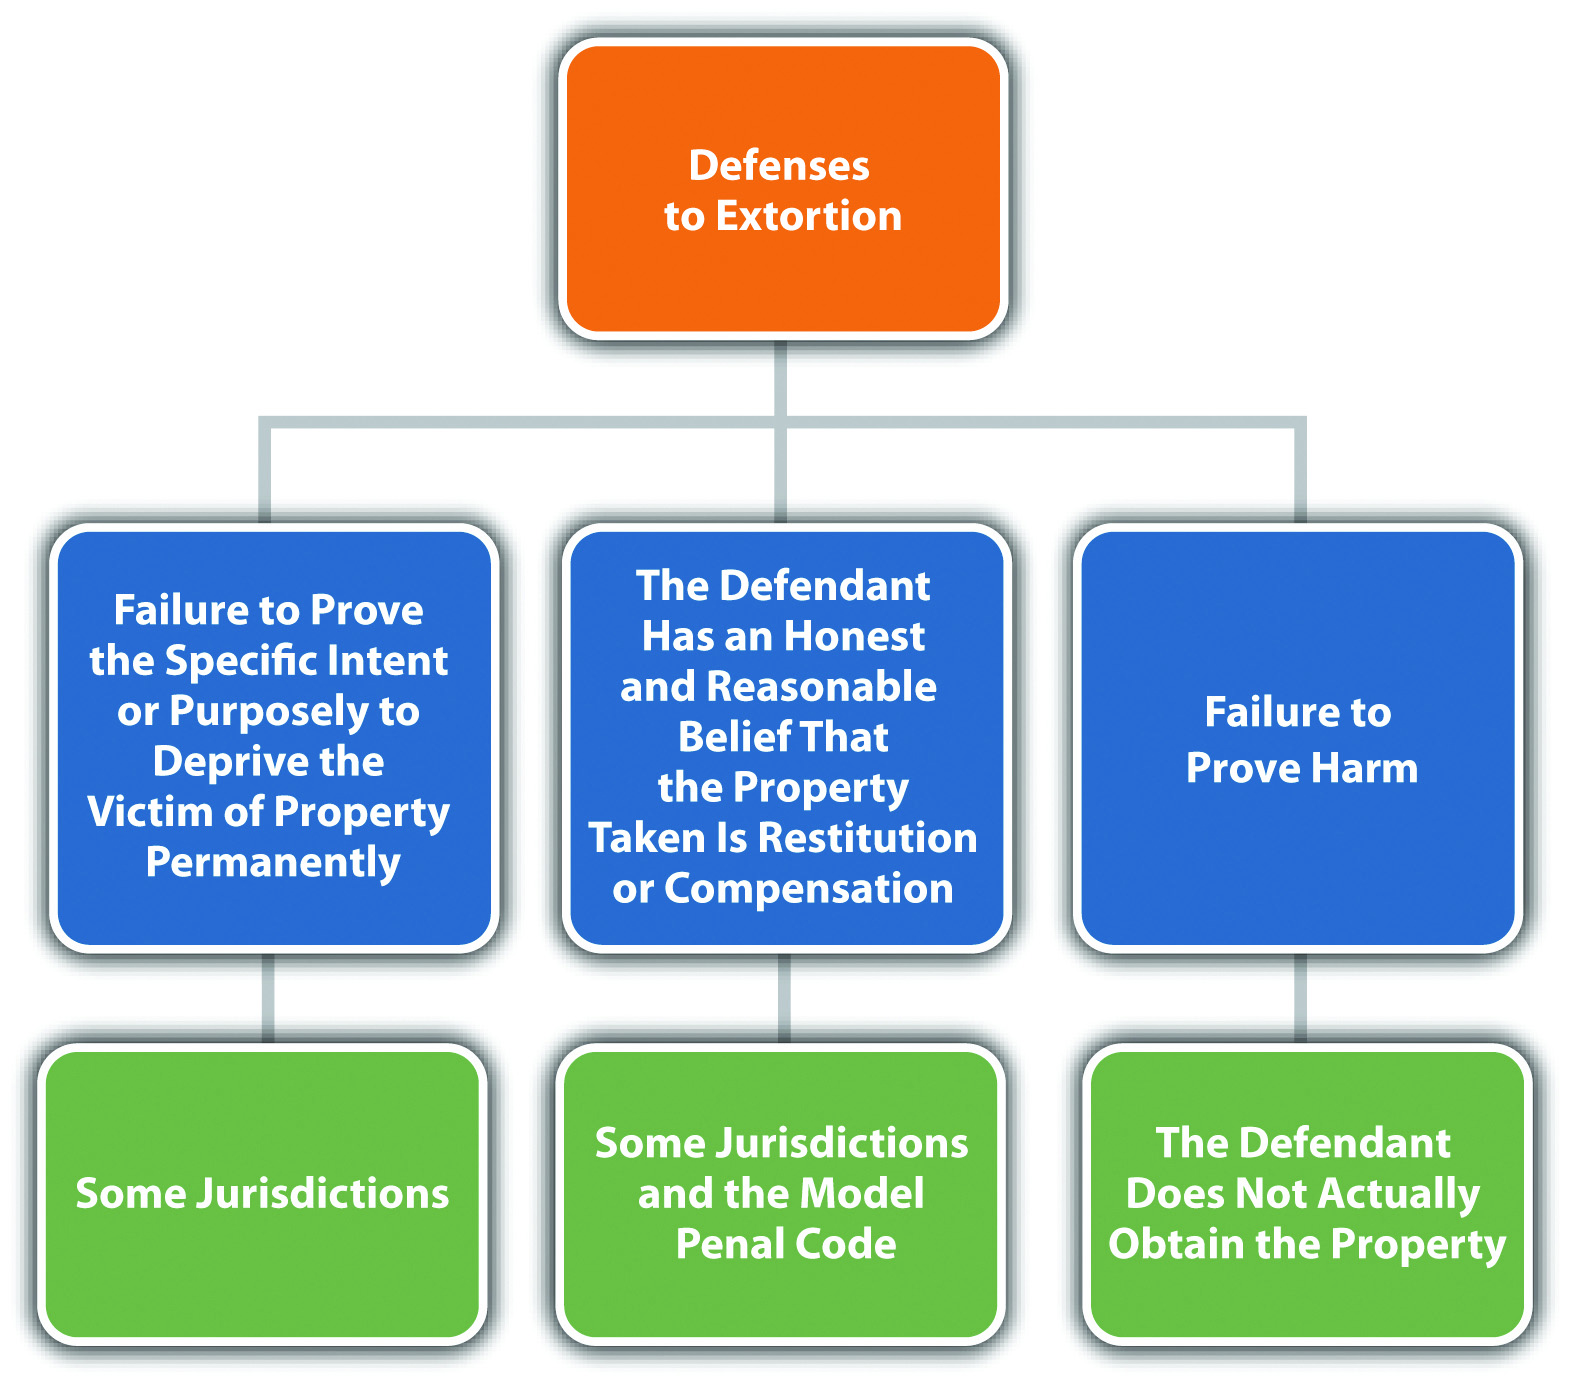 Diagram of Defenses to Extortion